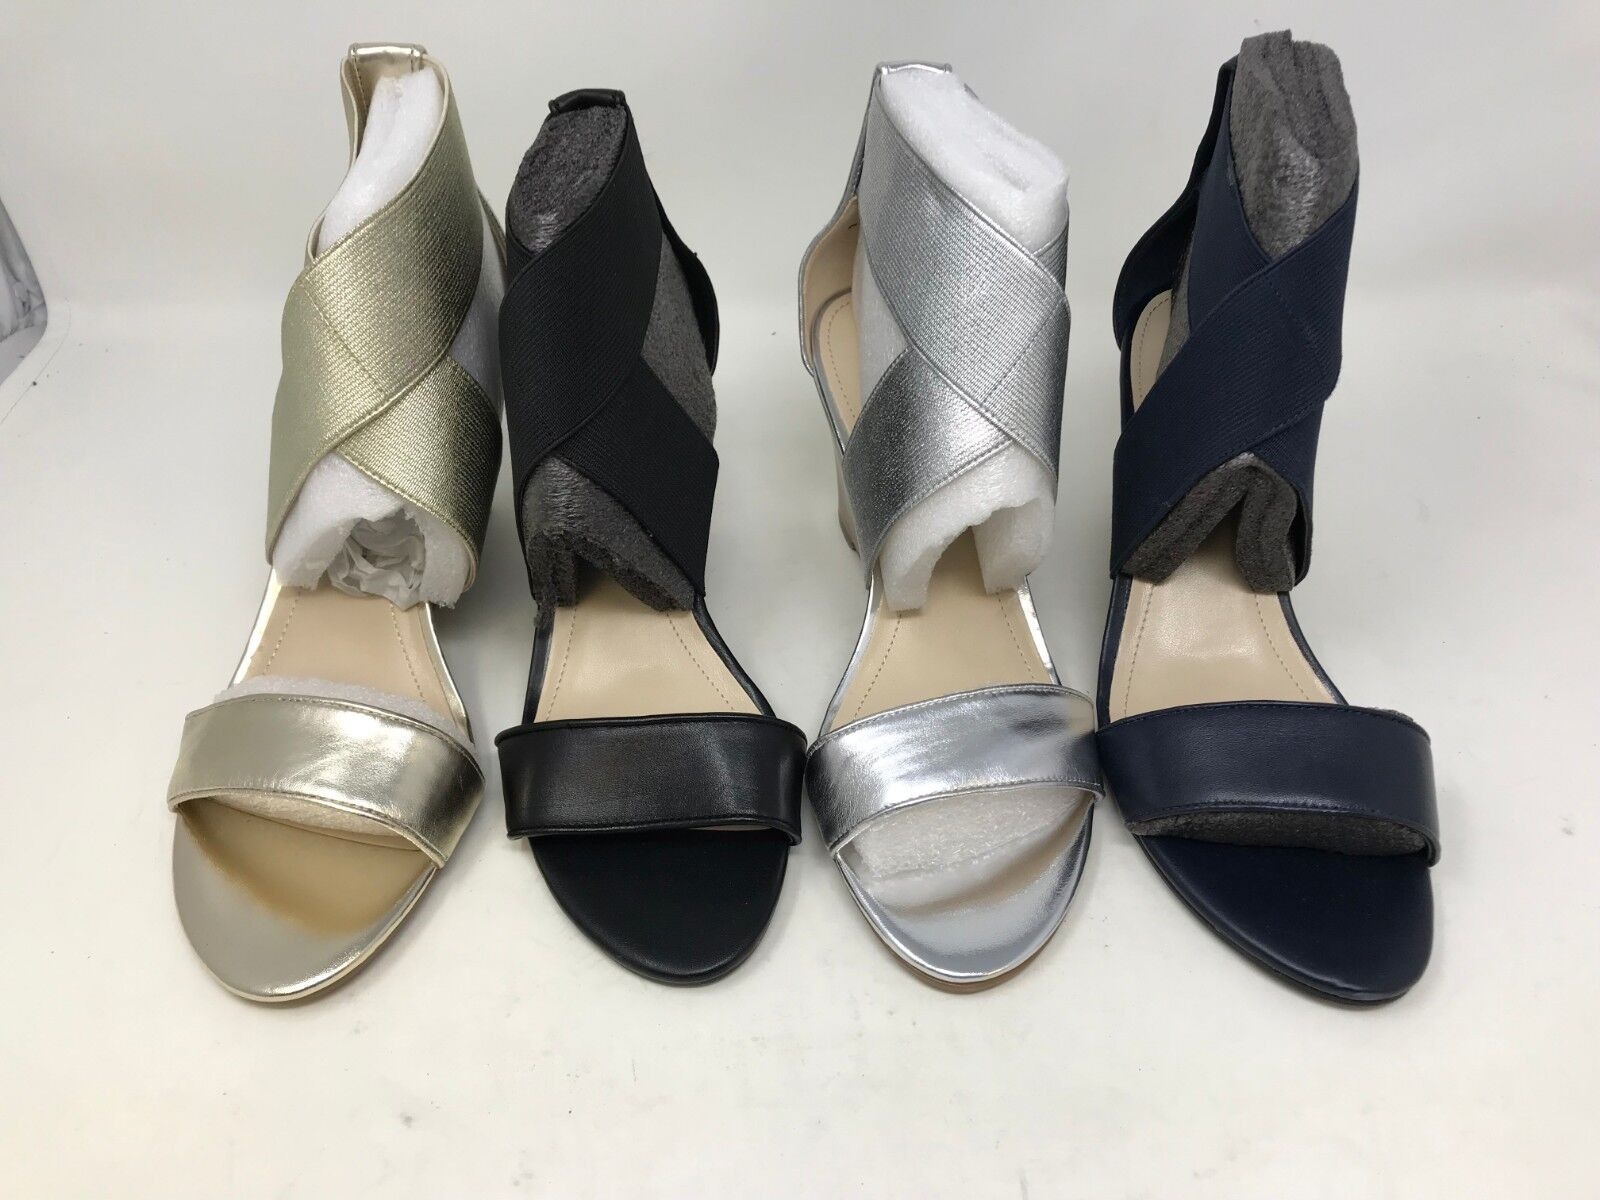 NEW! Marc Fisher Women's Cecila Wedge Sandals Black/Gold/Silver/Navy S12 z